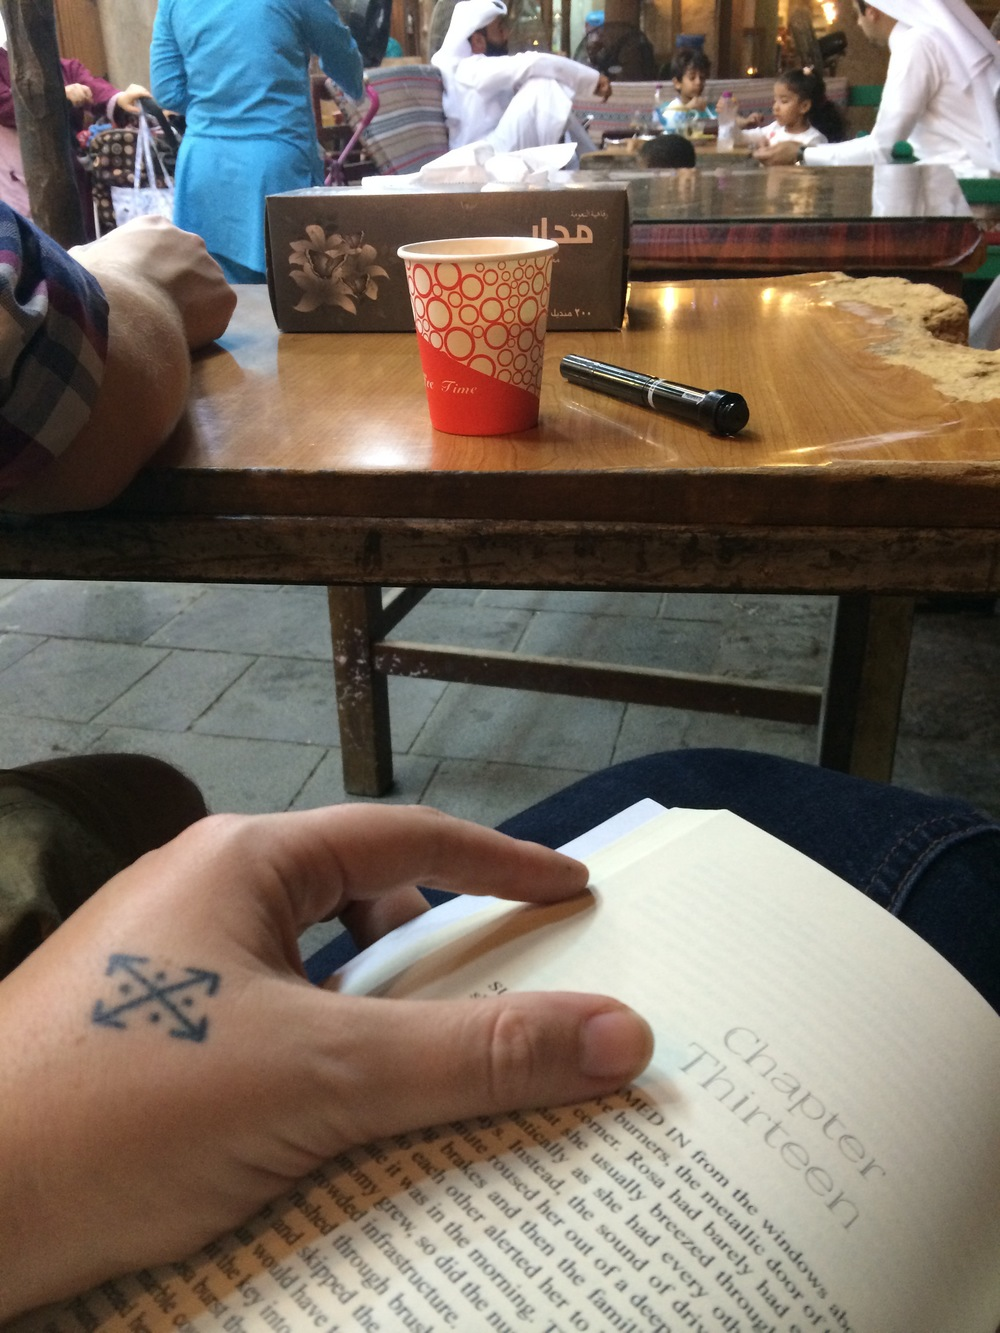 Starting to find my favorite things to do. Read, write in my book and have a karak with the locals.